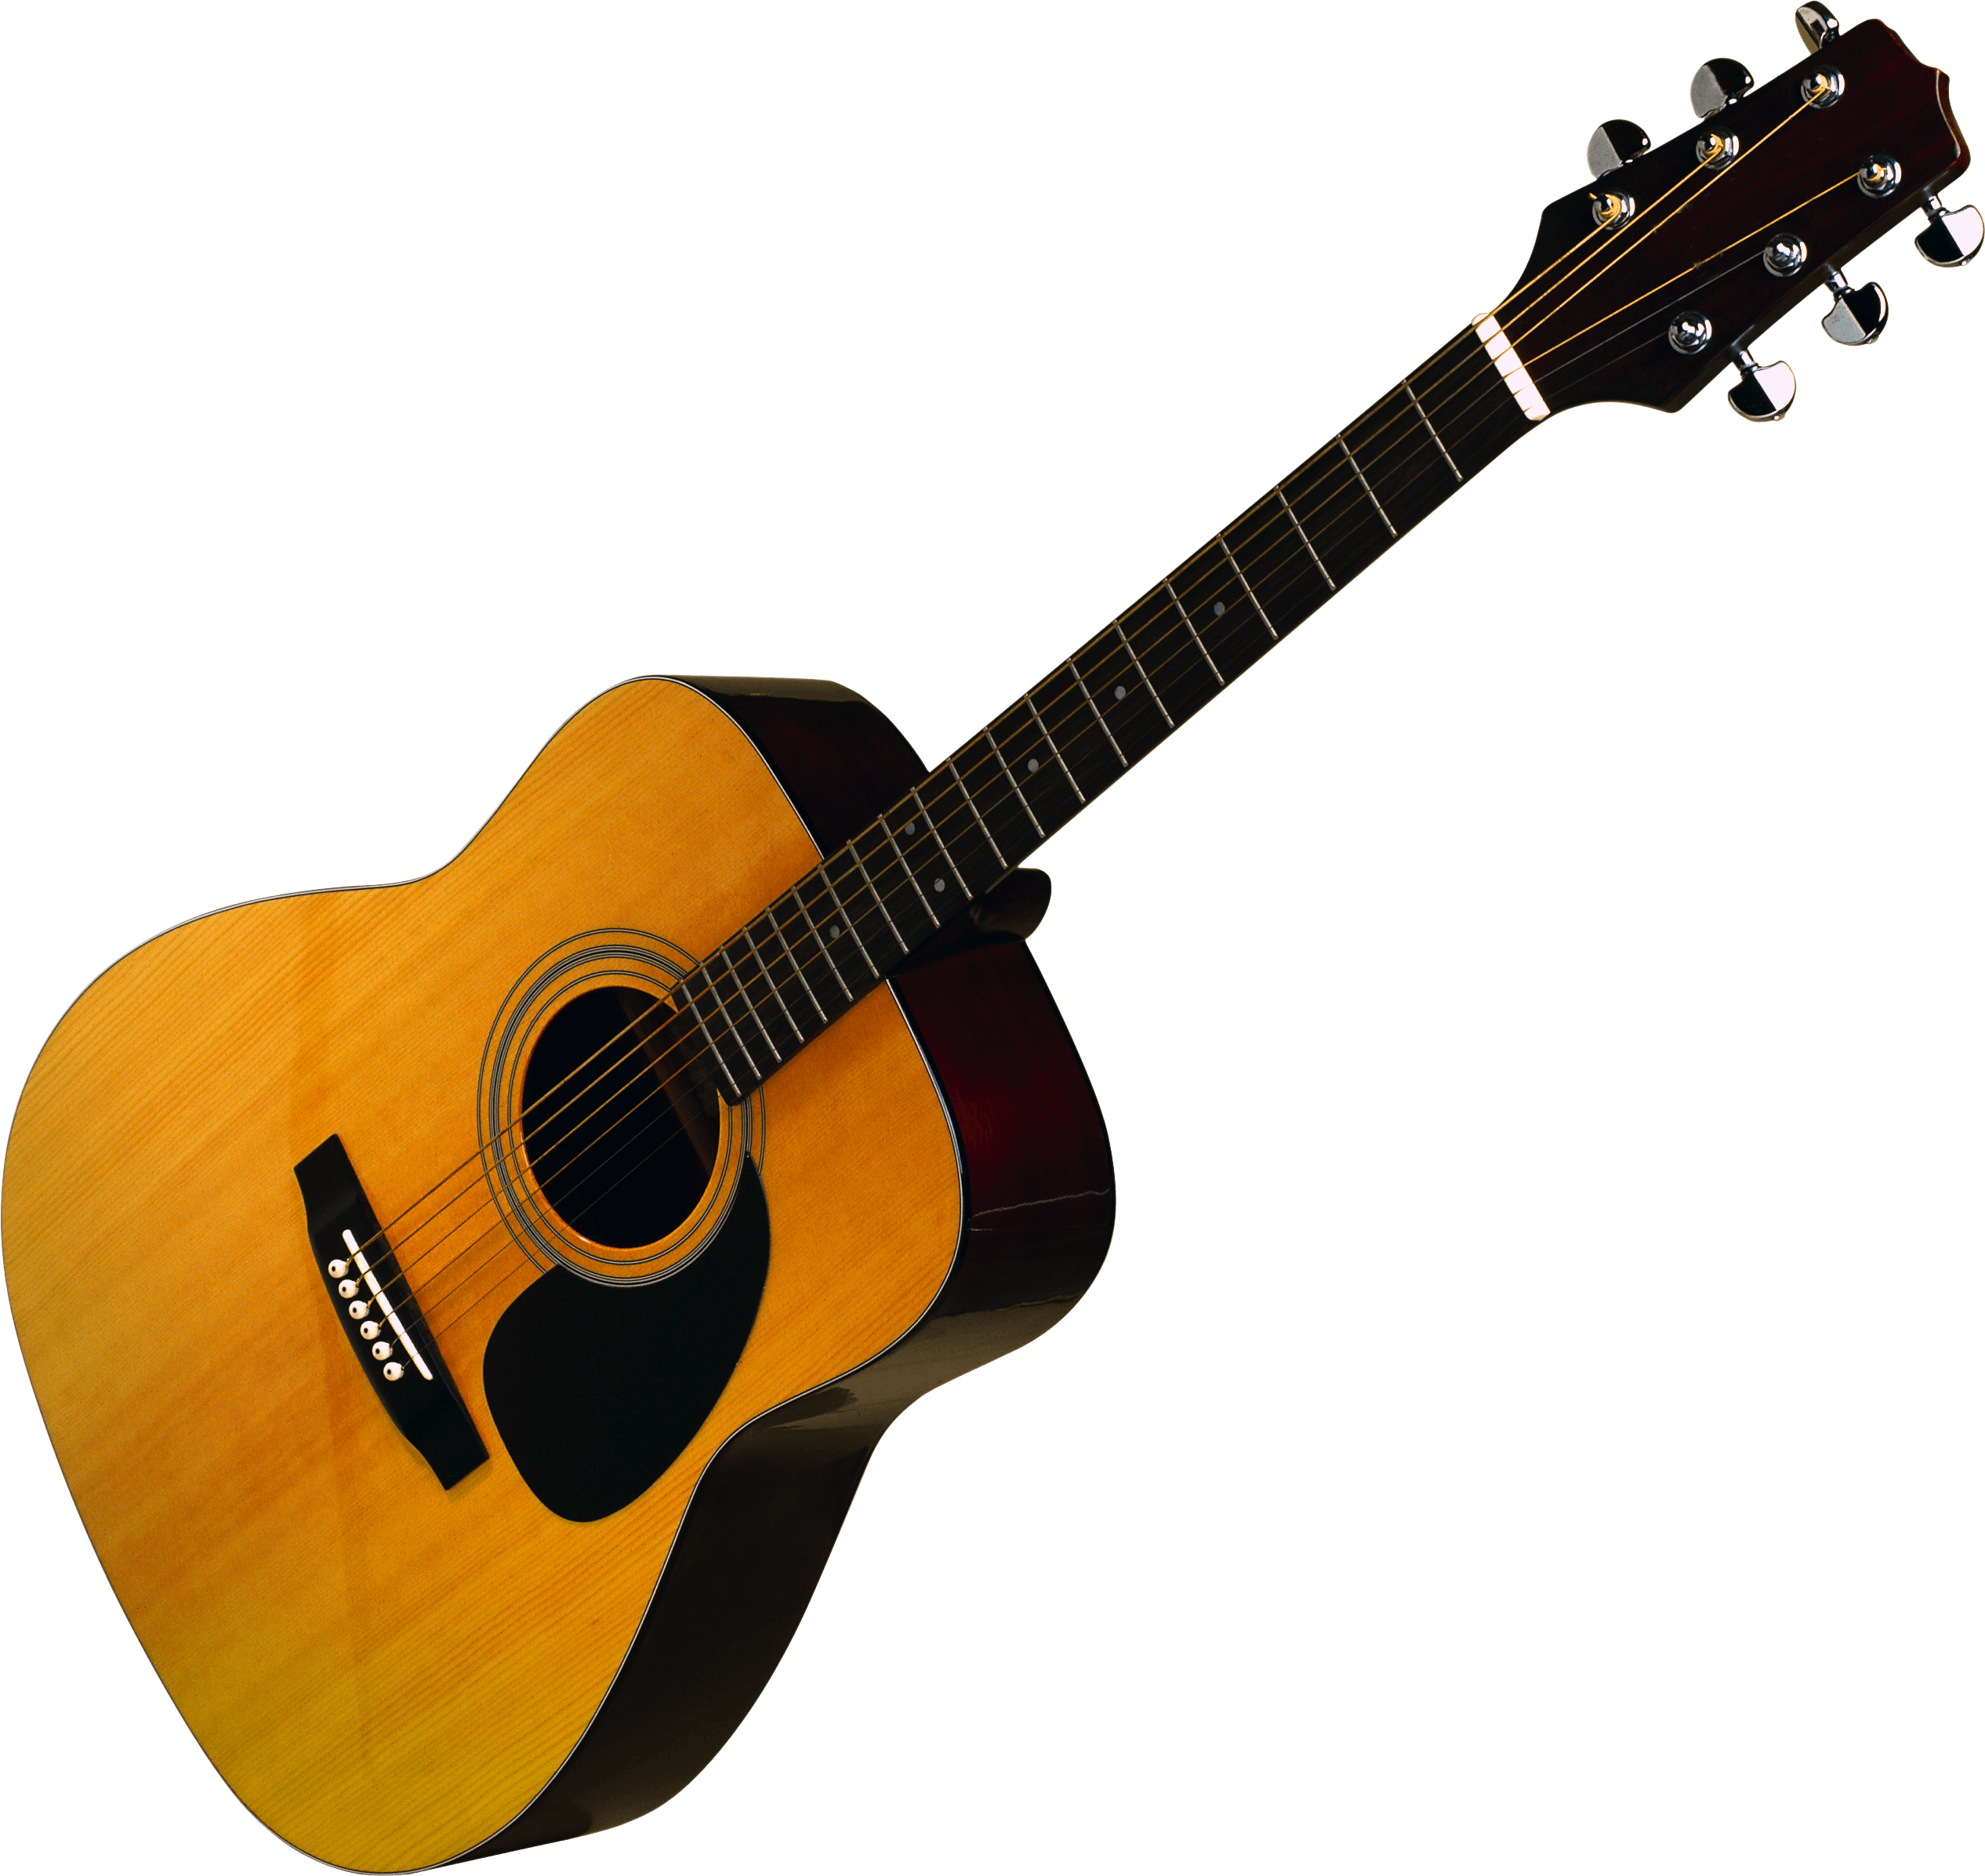 collection of hd. Clipart guitar dulha dulhan